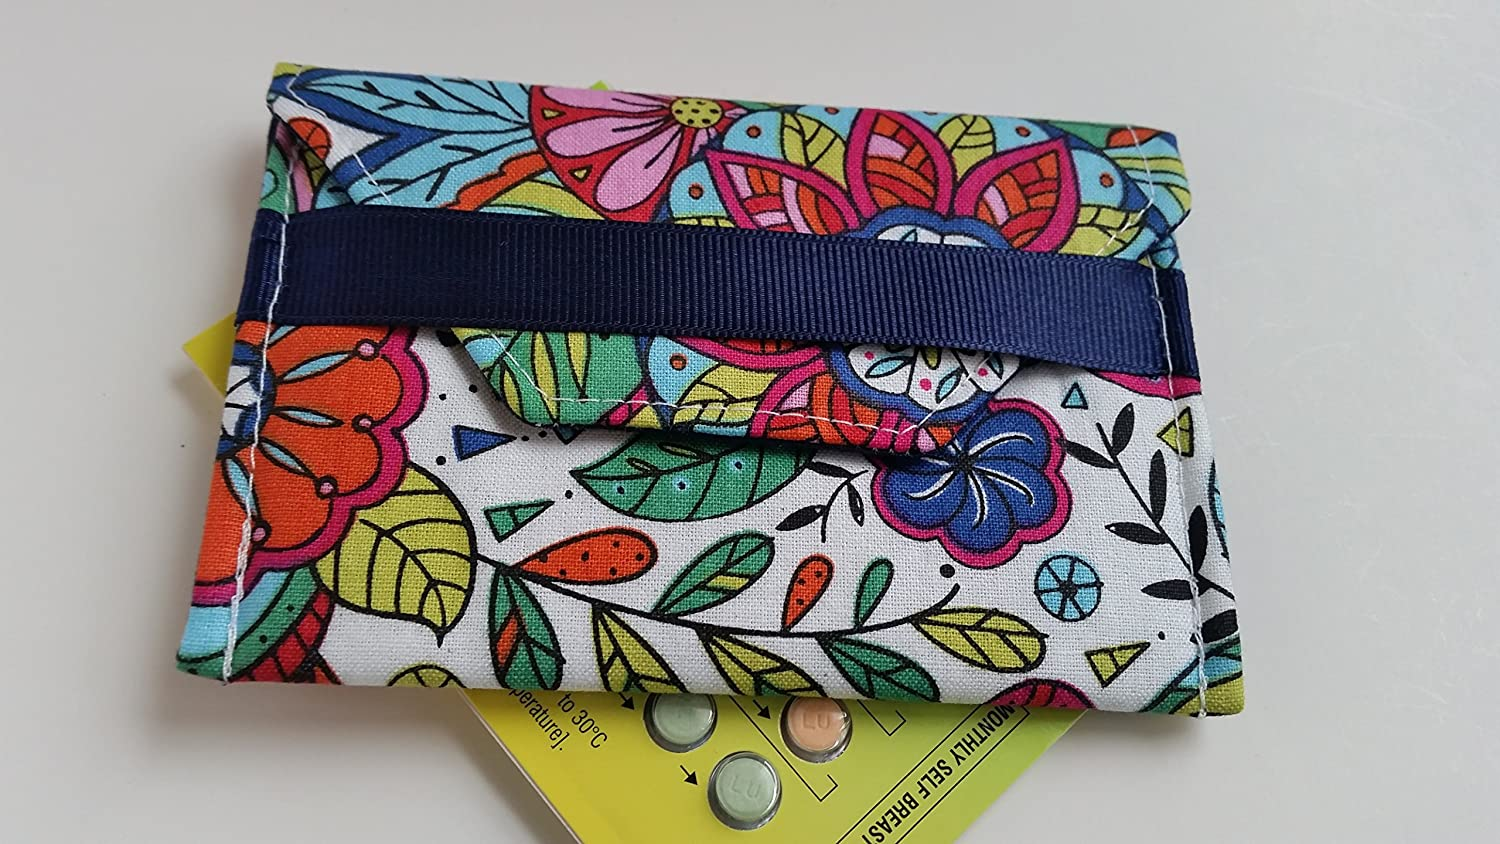 Birth control ribbon case- Discrete pill holder- Color me happy print